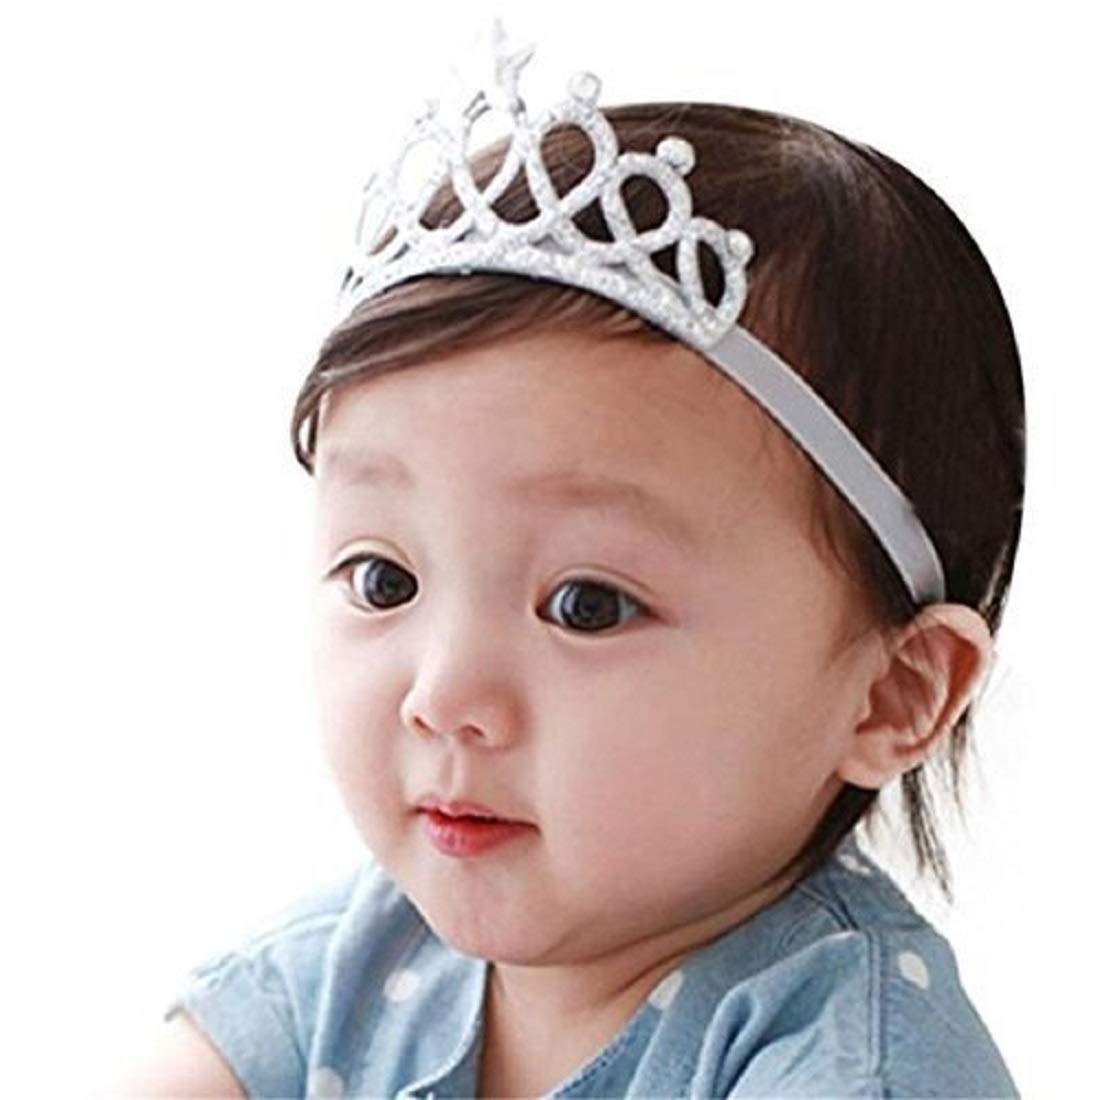 Ziory Silver Color Headbands with Tiaras Crowns Princess Head Band Photo  Props Crown Headband For Baby Boys and Baby Girls.  Amazon.in  Jewellery cafe1173bd9